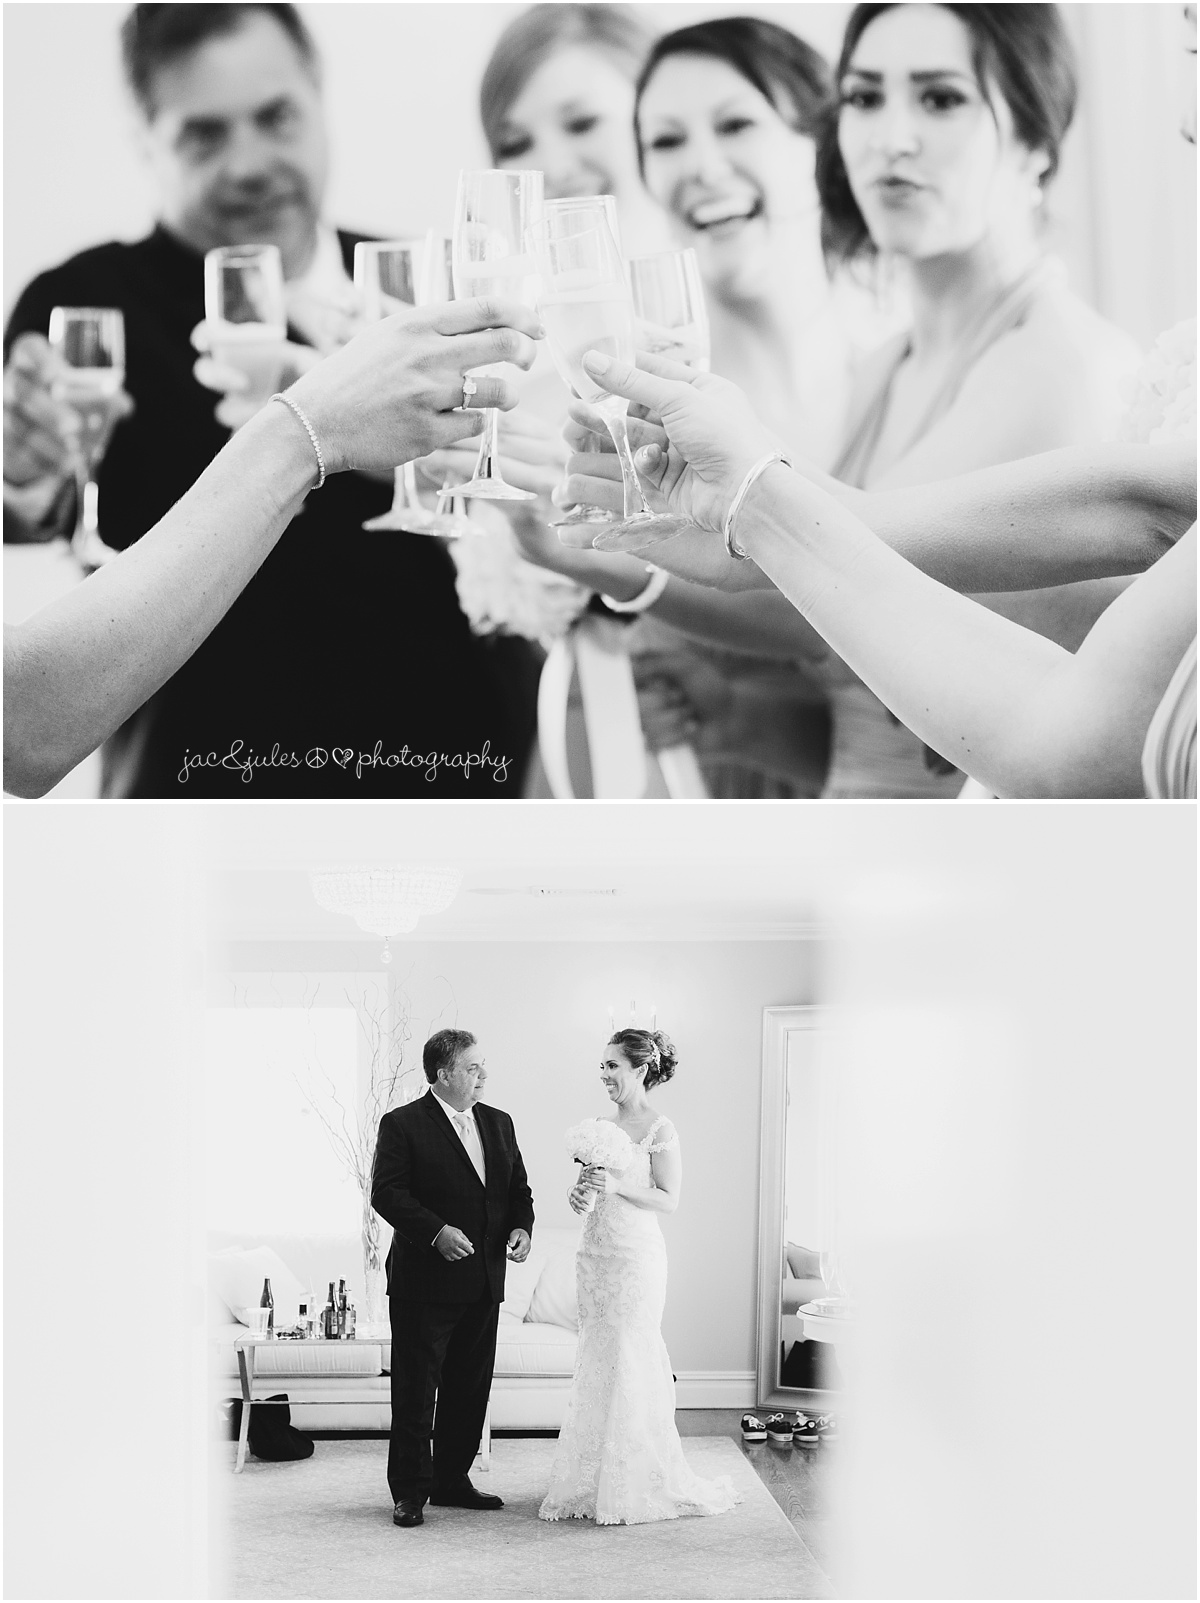 bridesmaids cheers, toast. father daughter moment before walking down the aisle.